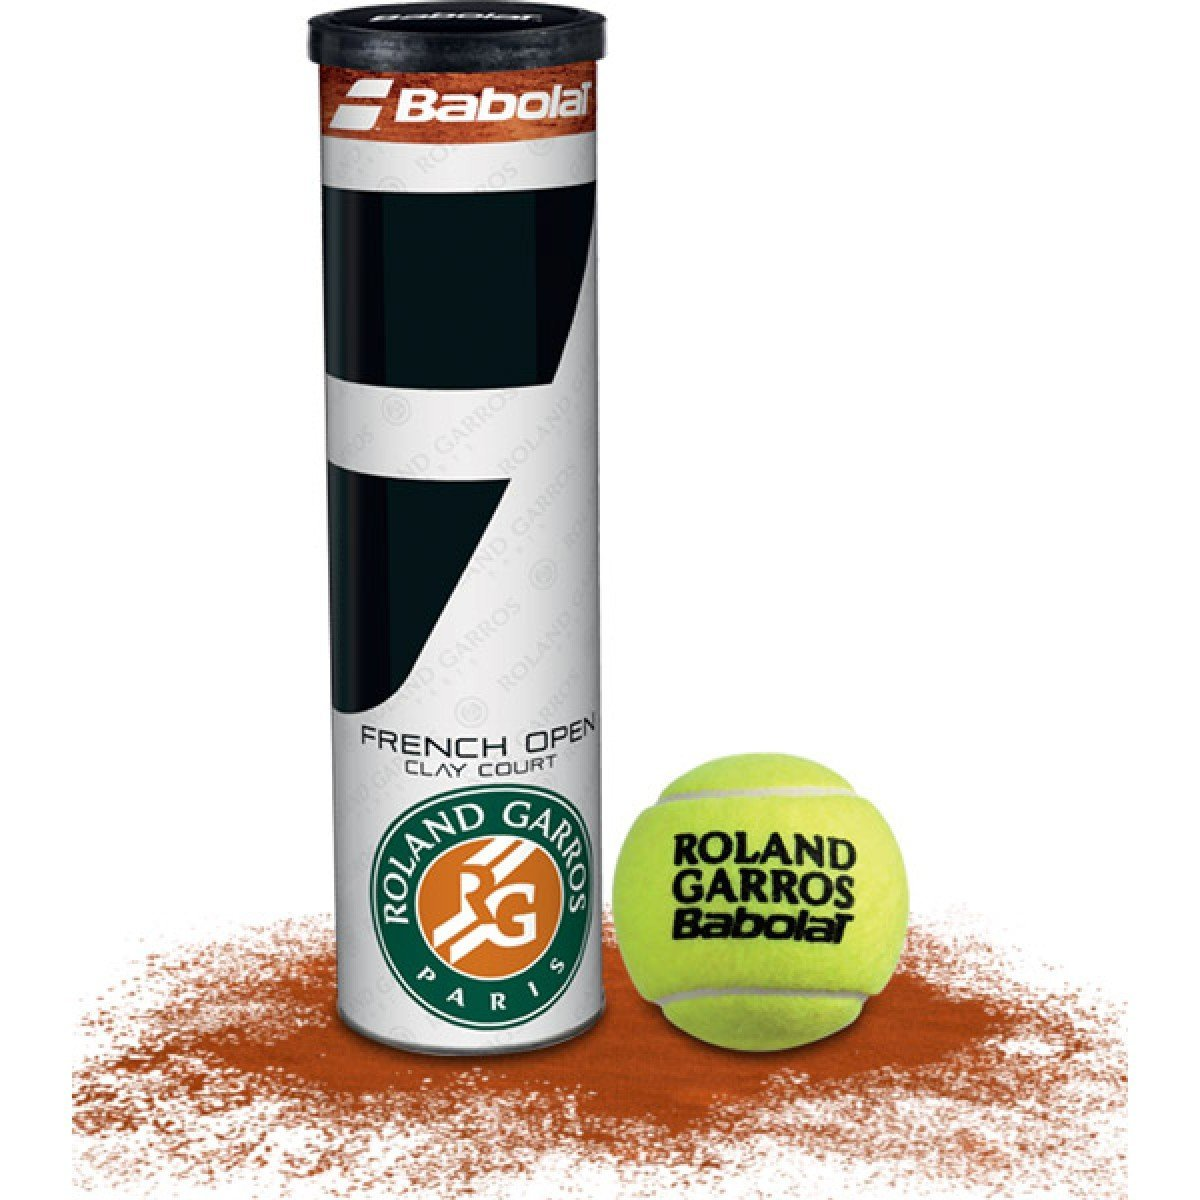 Tube de 4 balles French Open Clay Court - Mytennishop